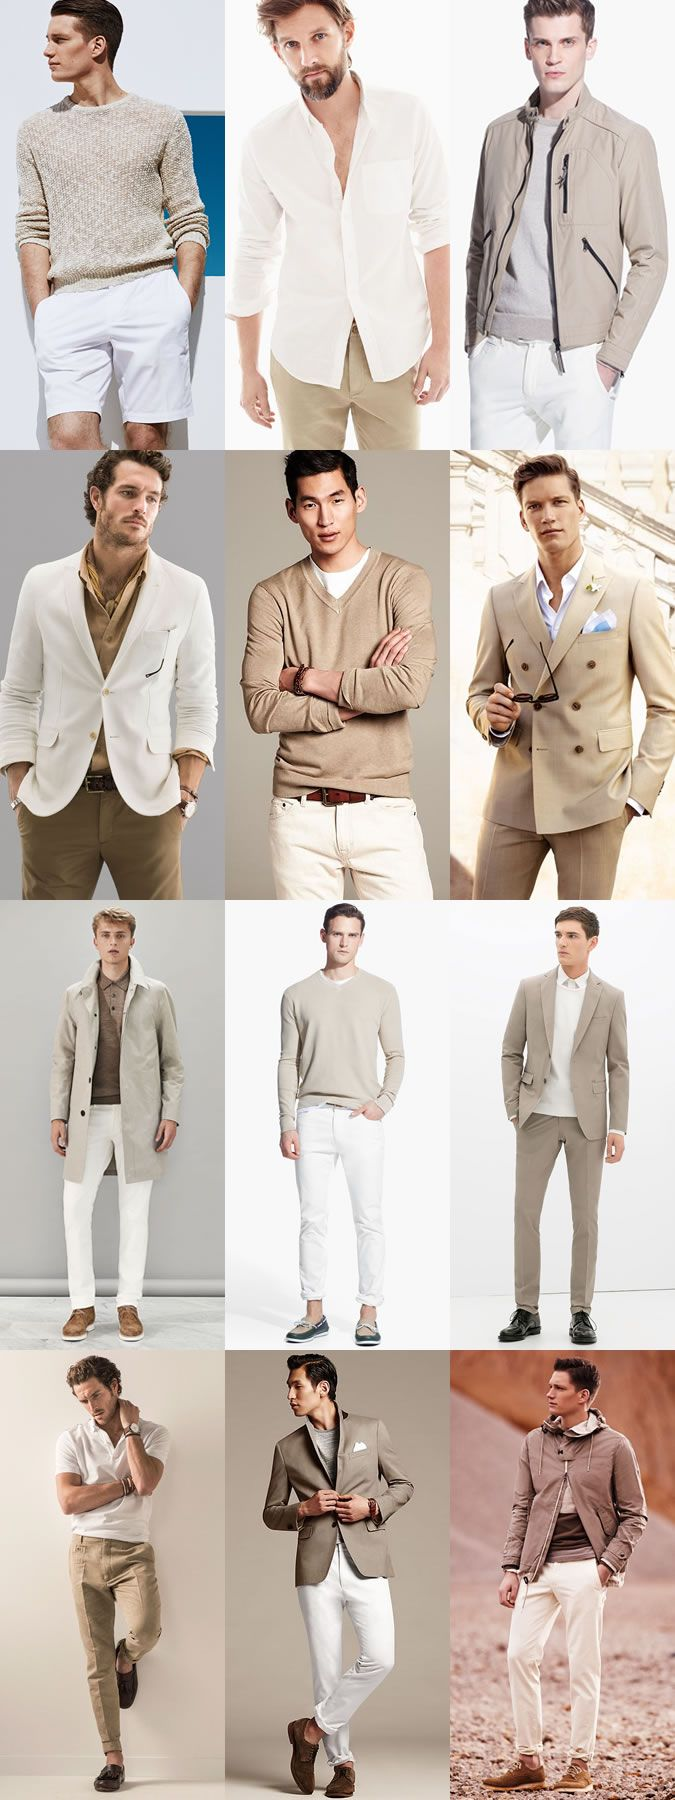 Diversify color in your wardrobe: Khaki and White; Brown and Navy; Blue & Green; White and Black.